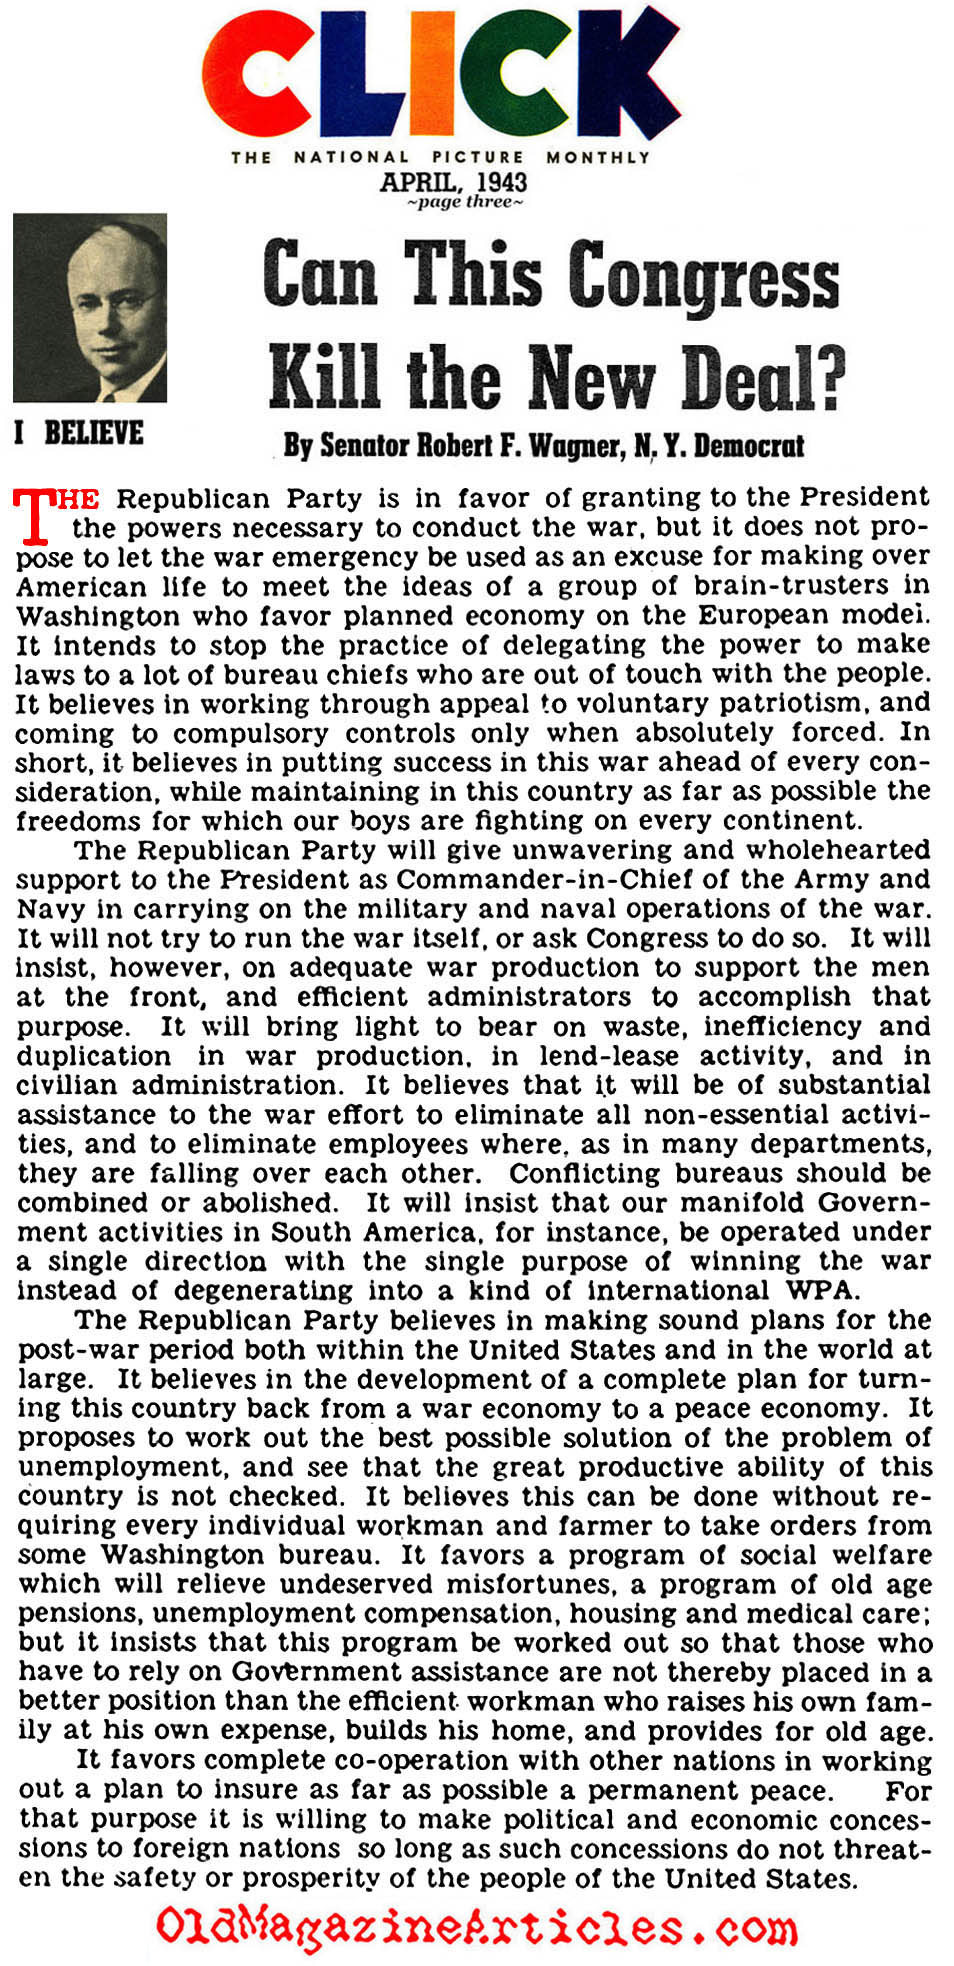 Can Congress Kill the New Deal? (Click Magazine, 1943)